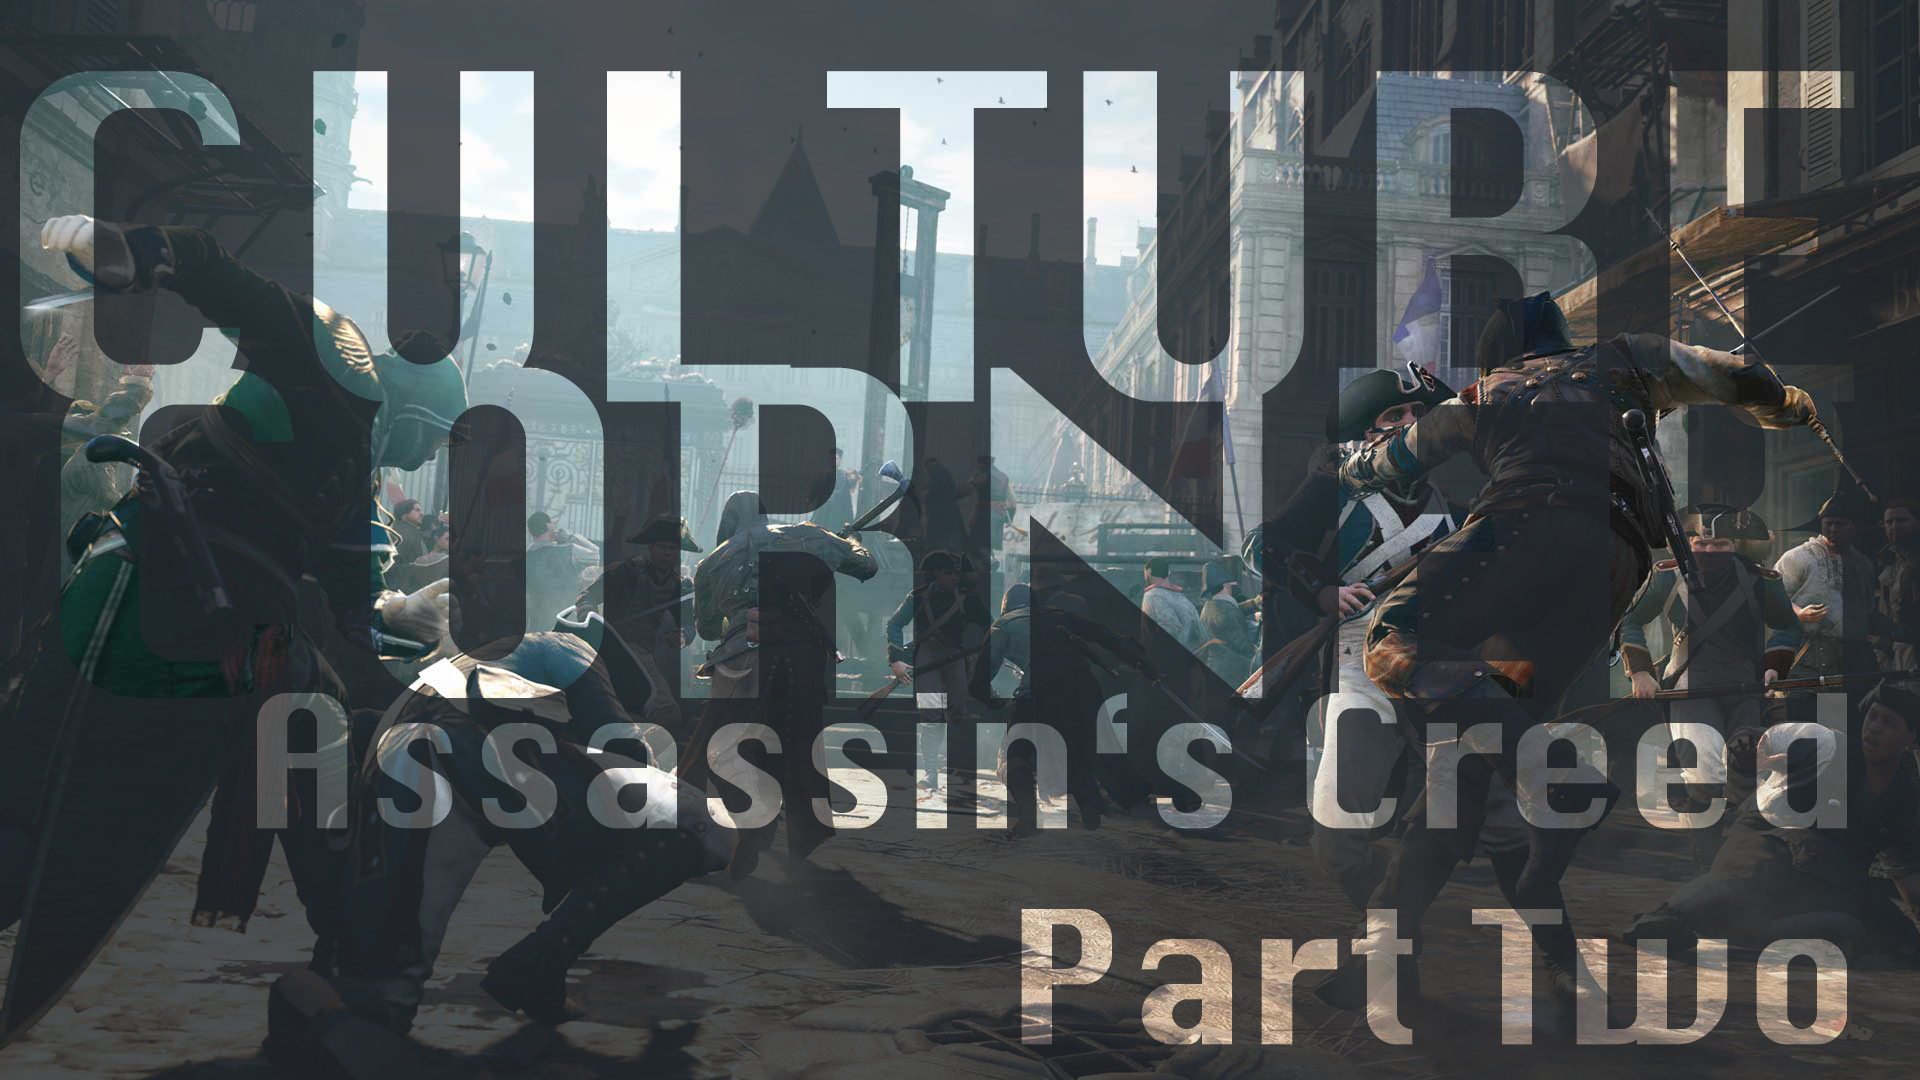 Culture Corner Pt. 37: An Assassin's Creed Retrospective (2)